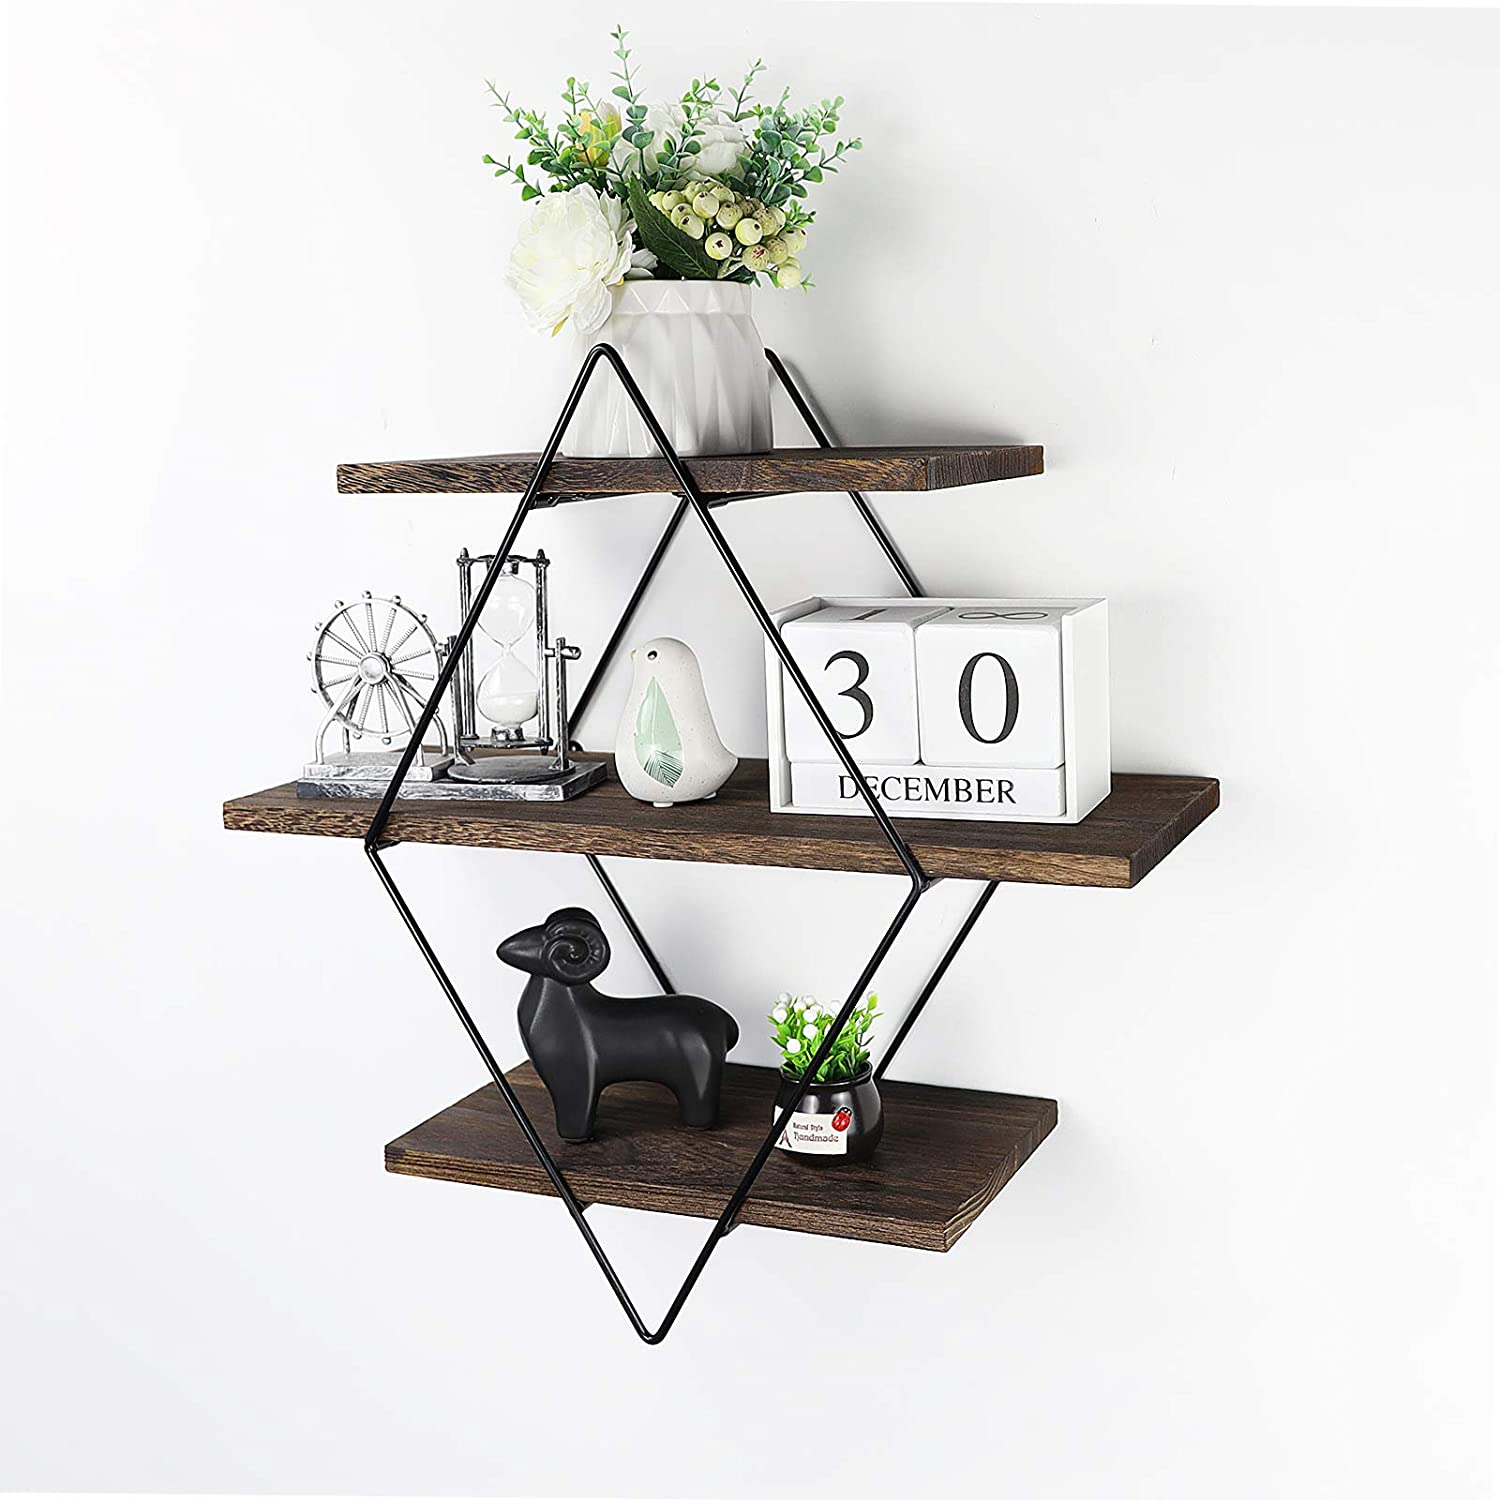 Befayoo Floating Shelves for Wall, Rustic Wood Geometric Style Decor Shelf for Bathroom Bedroom Living Room Kitchen Office (Diamond, Retro Brown)